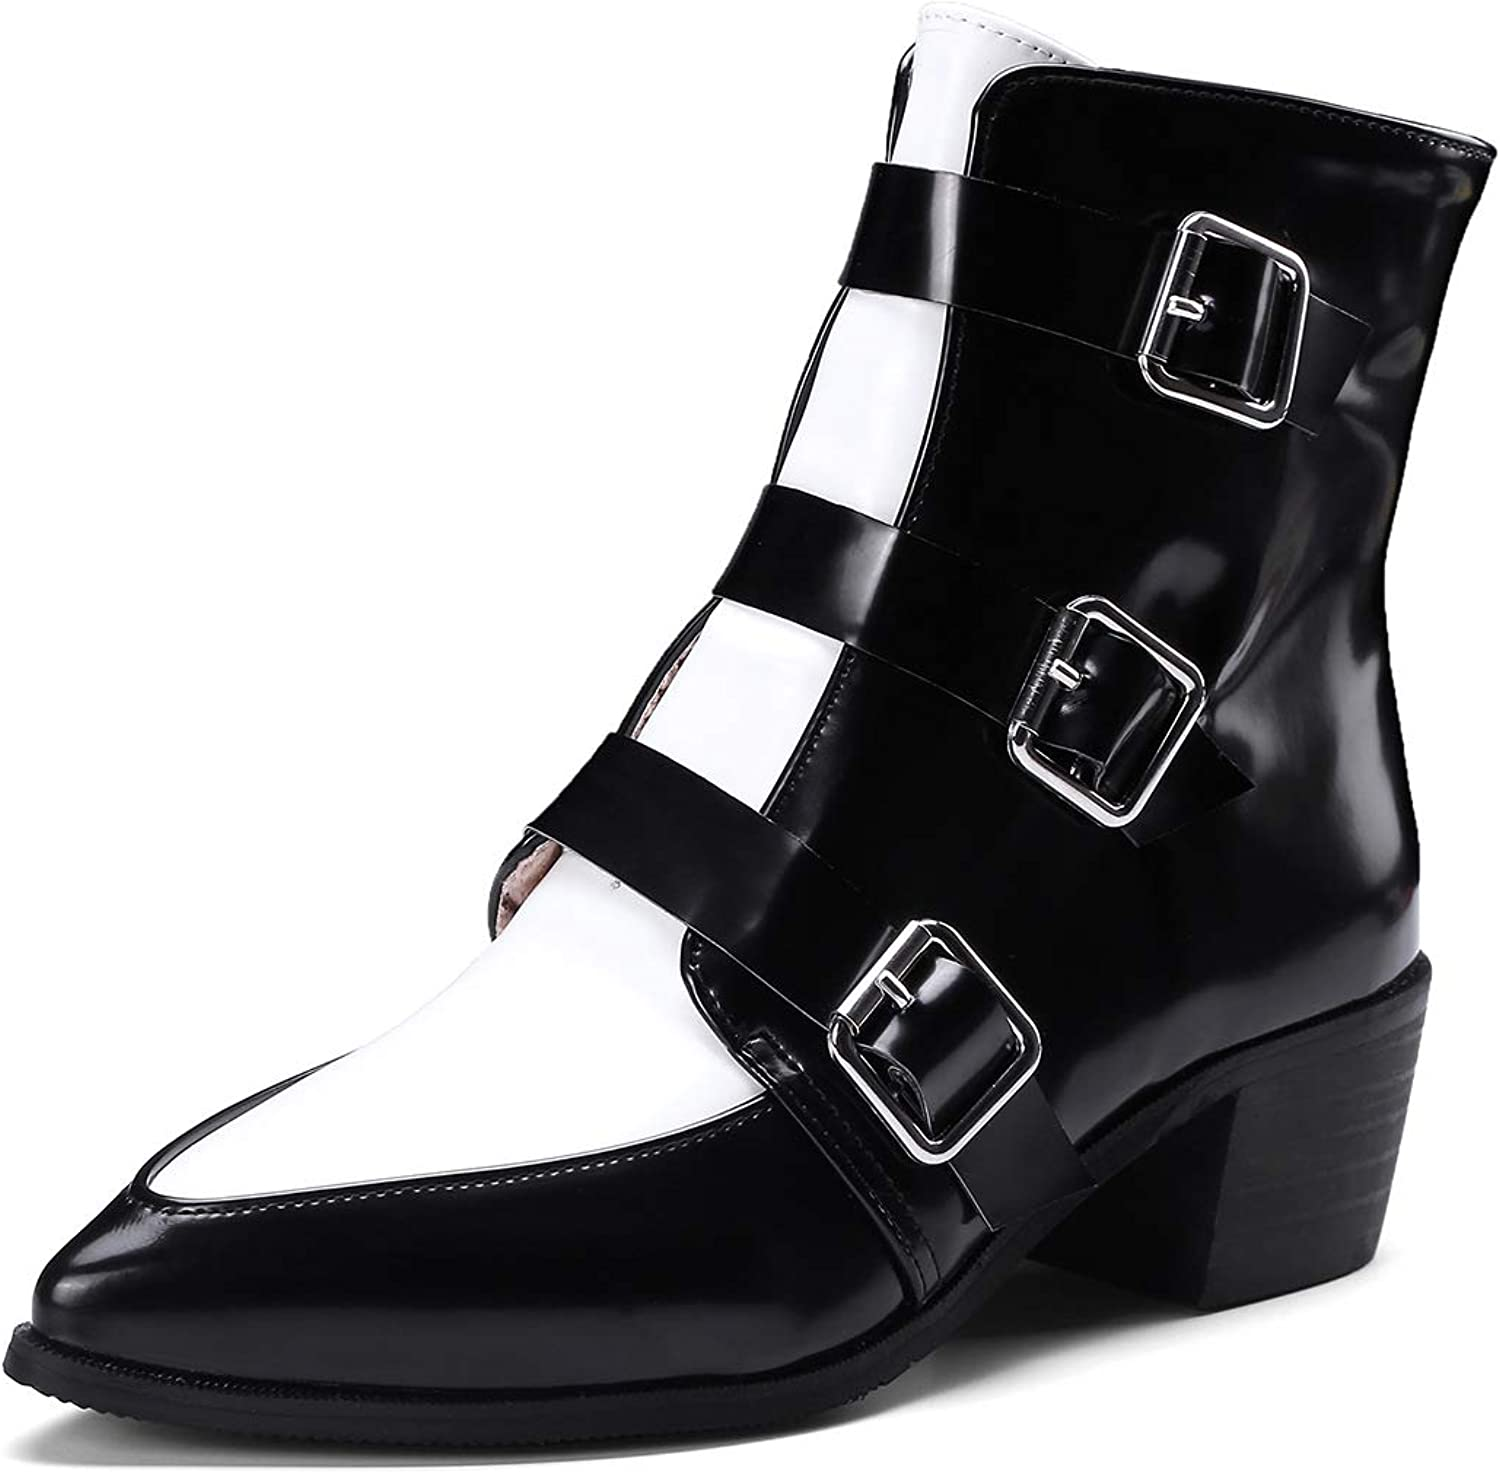 Women's Booties, Retro Thick Heel Small Leather shoes Ankle Boots Martin Boots Low-Heel Ladies Belt Buckle Fashion Boots (color   B, Size   35)